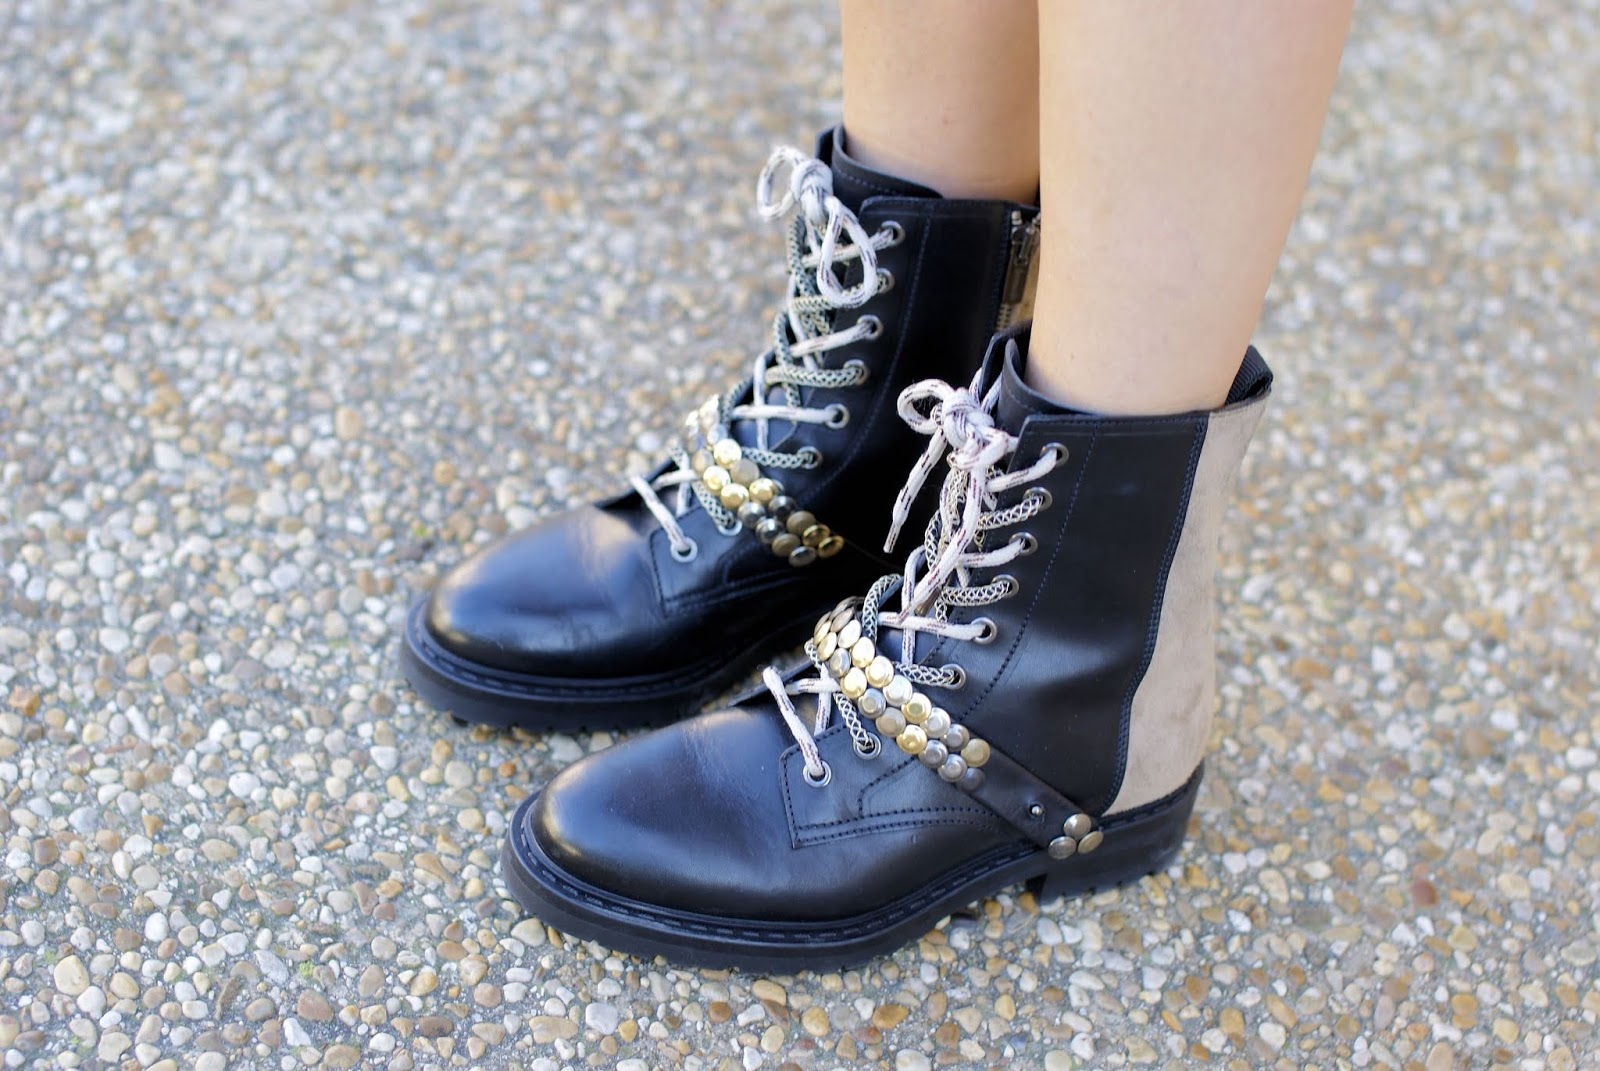 Barracuda boots on Fashion and Cookies fashion blog, fashion blogger style